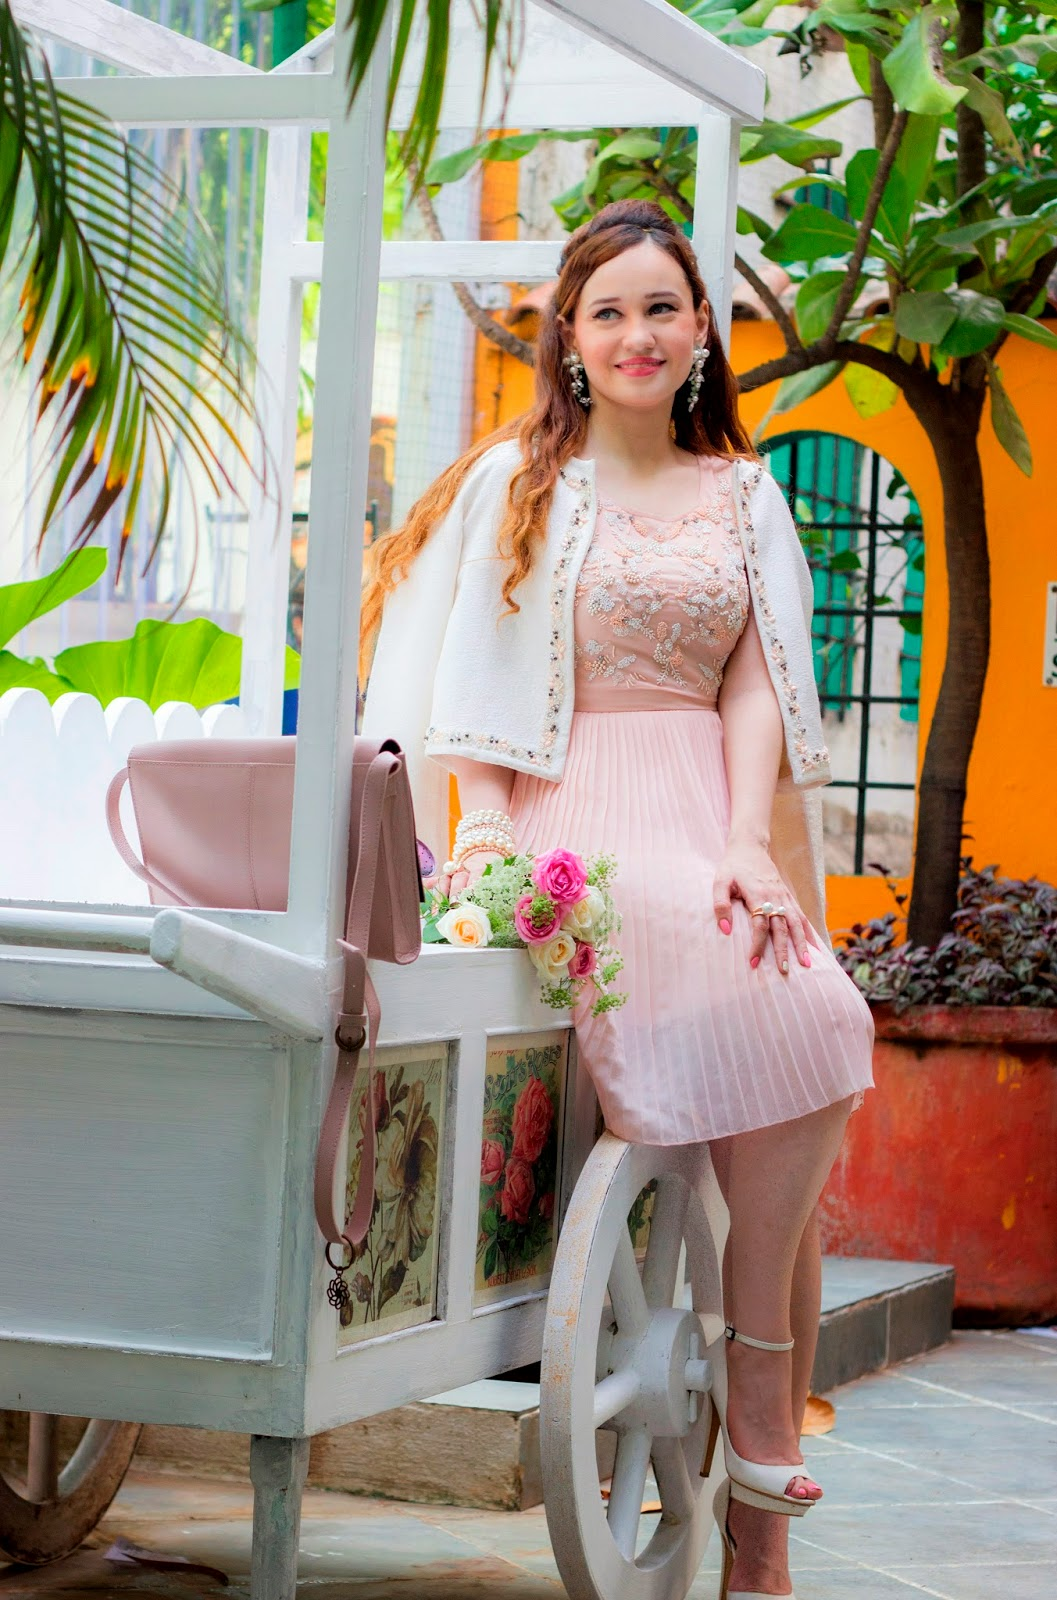 Vero Moda Marquee Powder Pink Dress & Ivory Jacket by Karan Johar